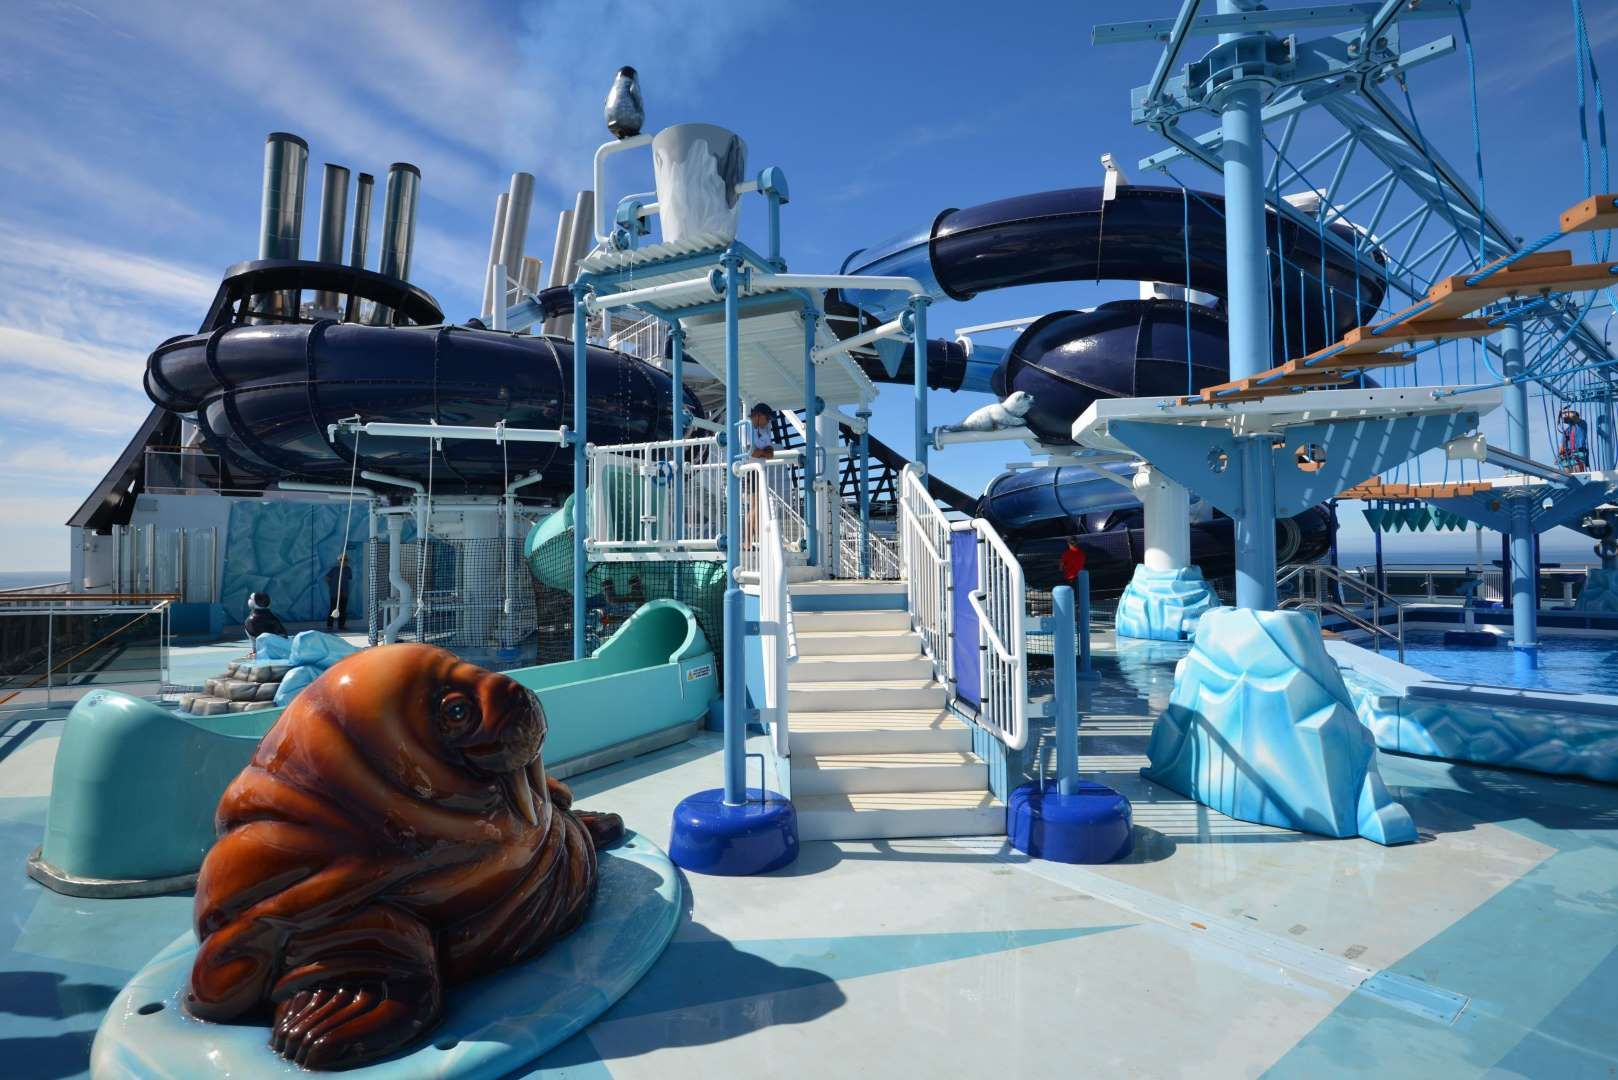 Msc meraviglia features one of the biggest water play